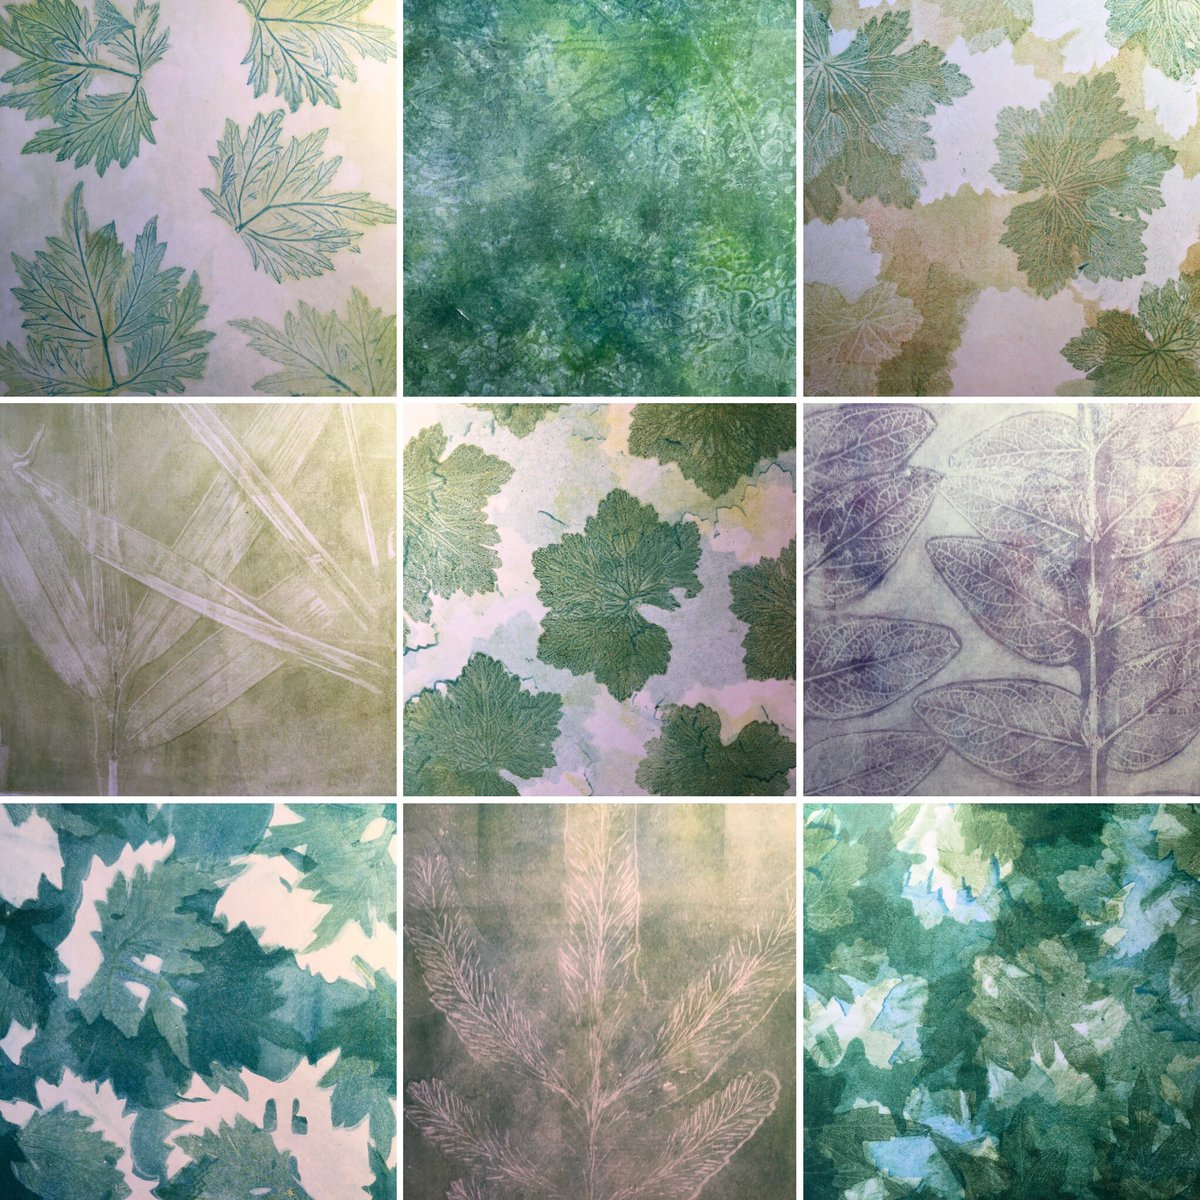 A day of #artisticexploration @GelliArts printing with Caligo safe wash inks and #paperweaving I like the #natureinspired colours. They may get an outing @DoncasterFair & @artwalkwake in March @Folksy Looking forward to my nature inspired Gelli Printing @SkeltonGrange in Junepic.twitter.com/oNa16Upboa